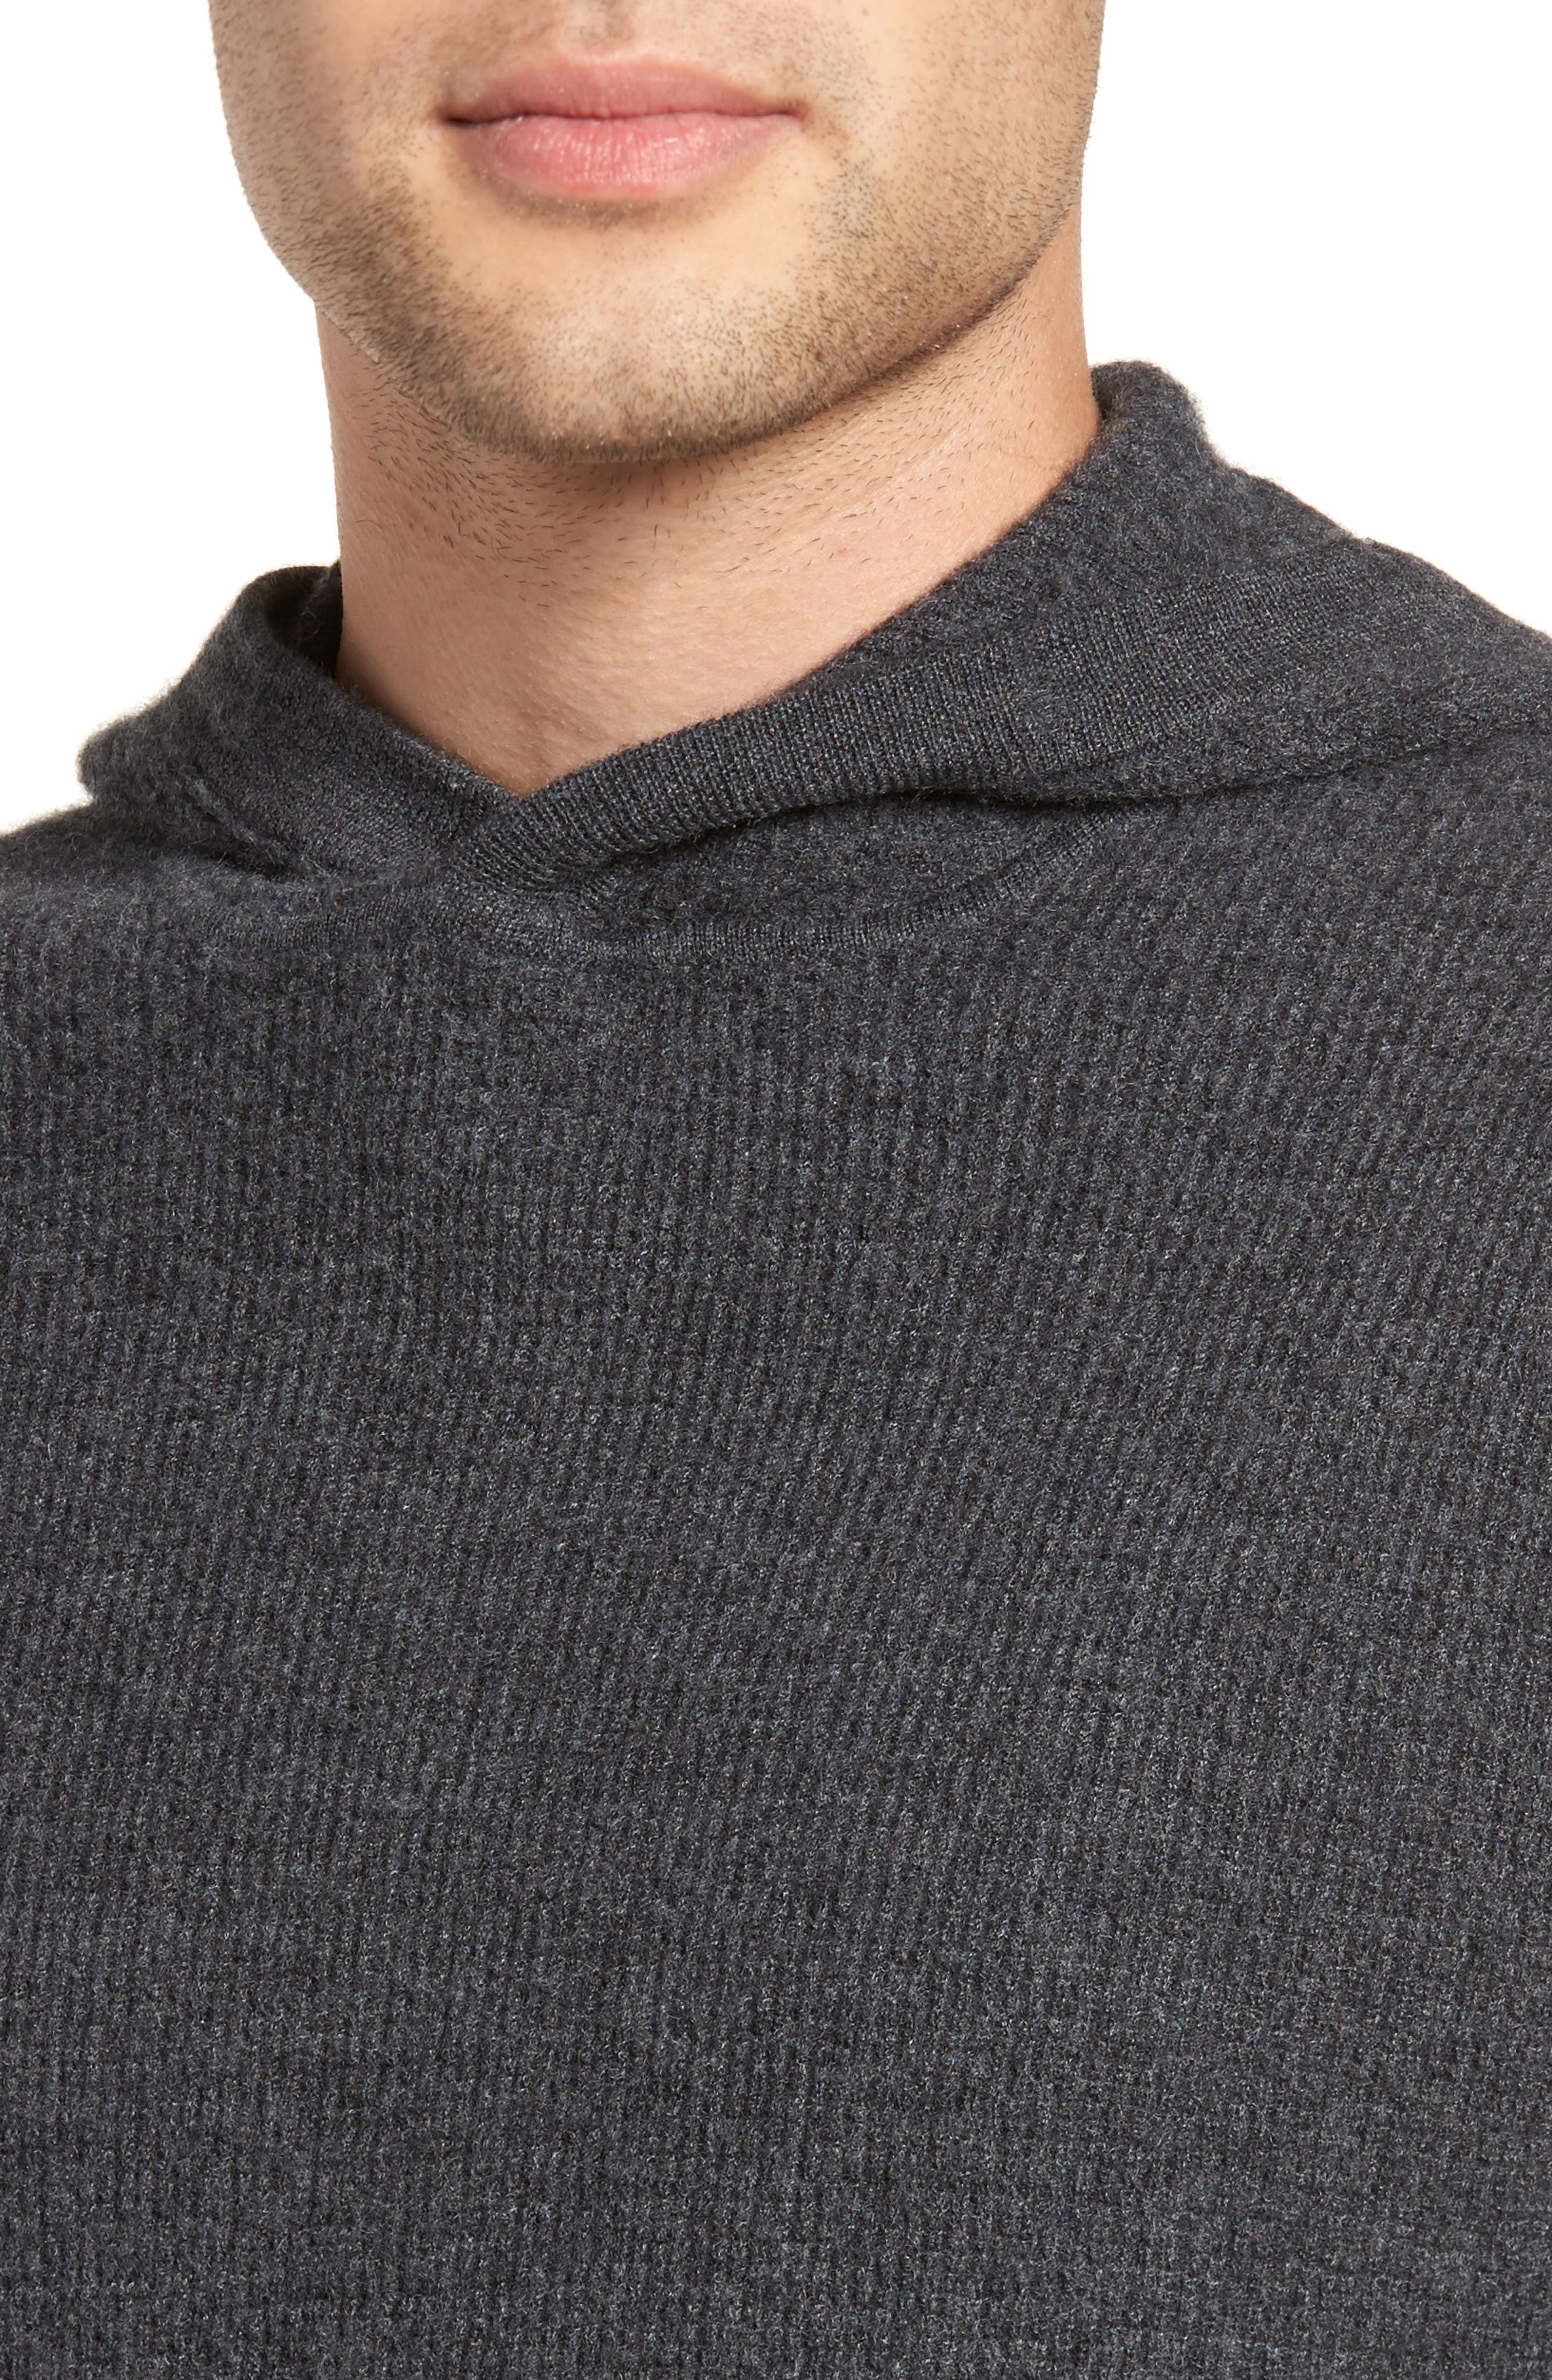 Thermal Knit Cashmere Hooded Sweater,                             Alternate thumbnail 4, color,                             020